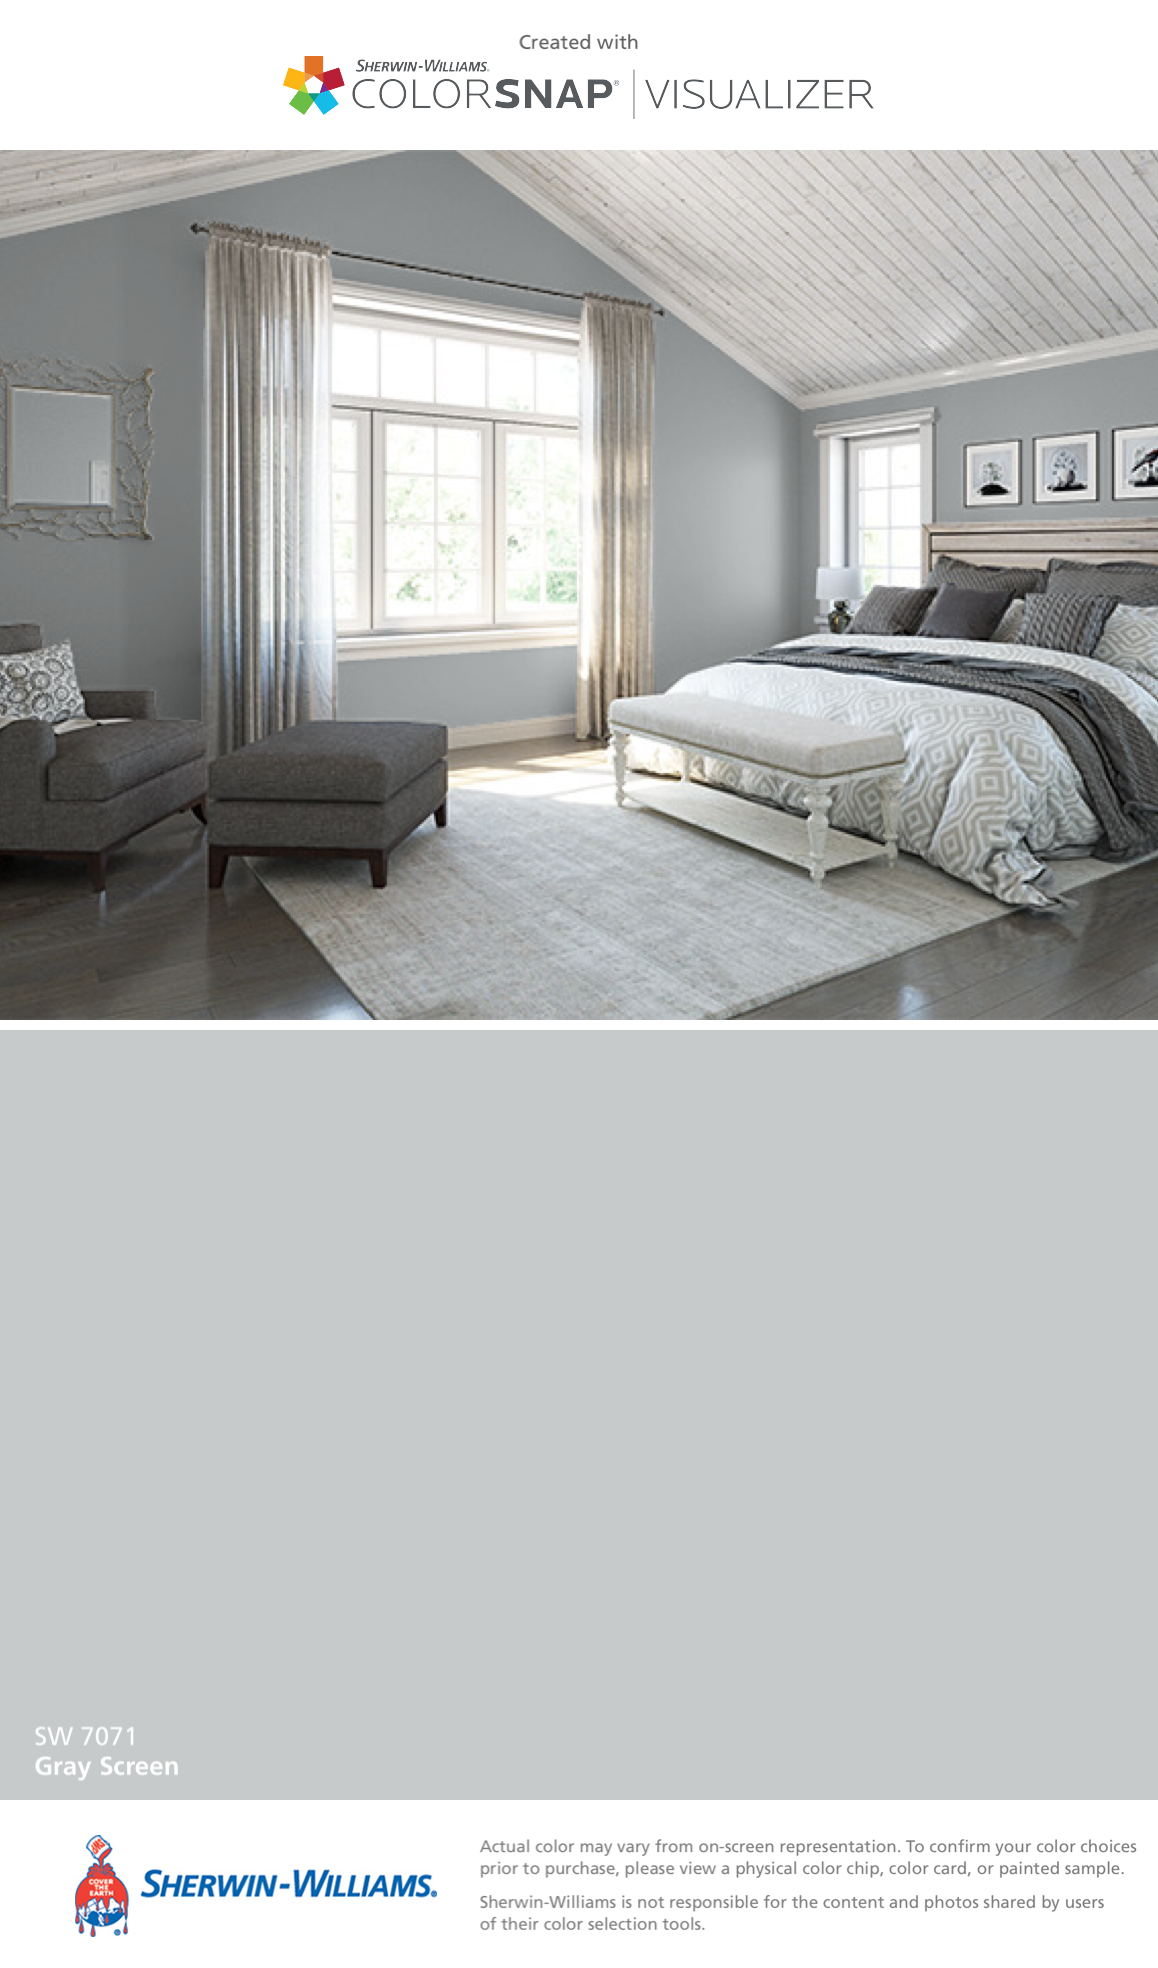 I found this color with colorsnap visualizer for iphone by sherwin williams gray screen sw 7071